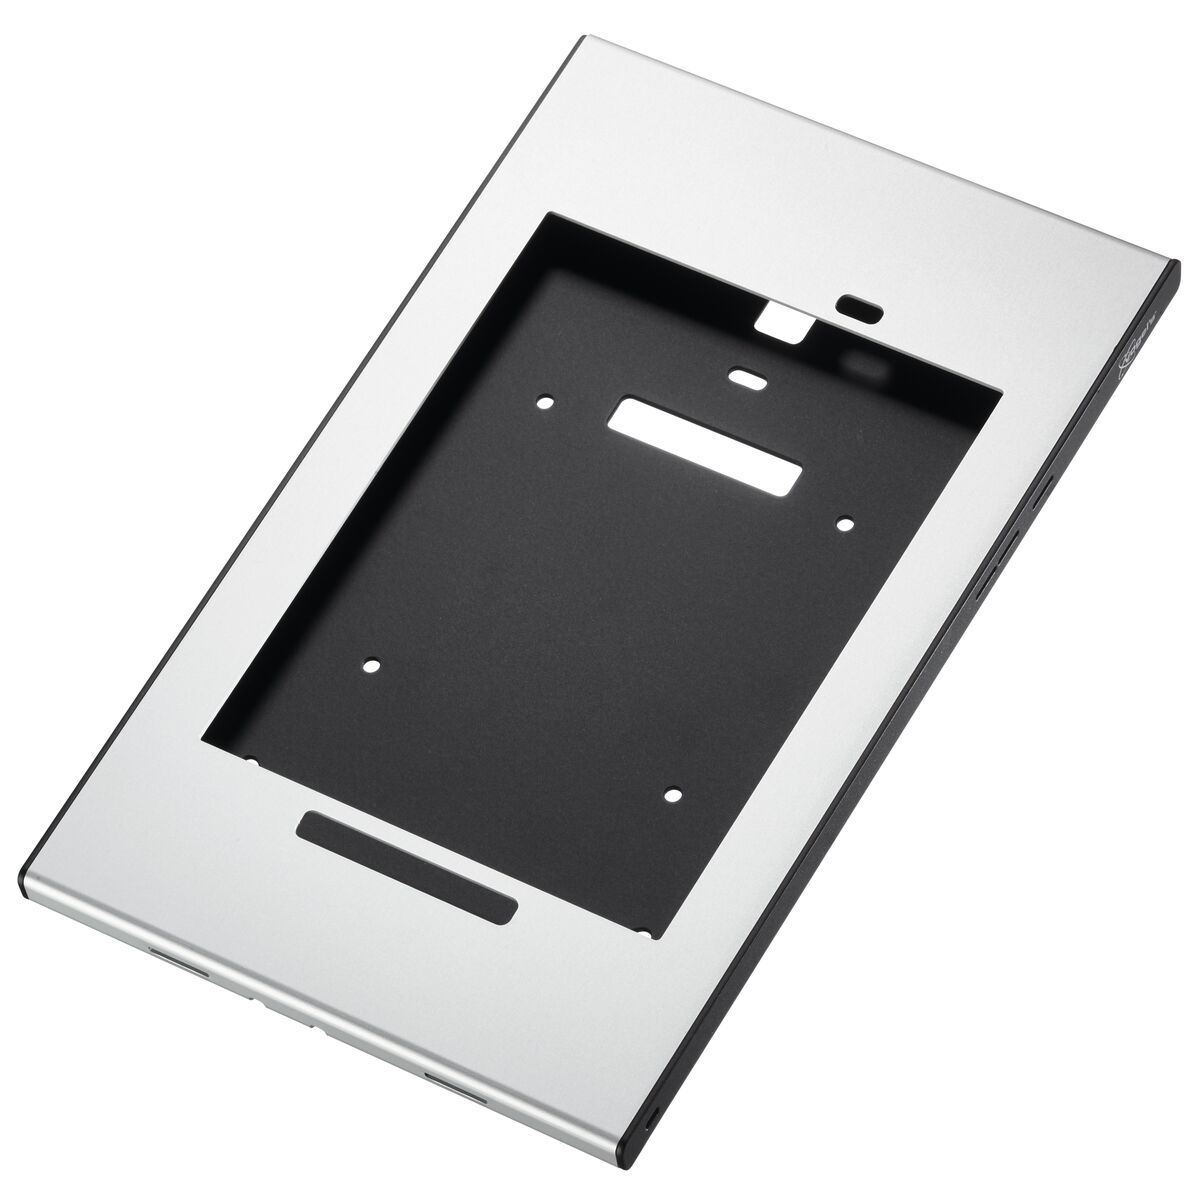 Vogel's PTS 1221 TabLock für Samsung Galaxy Tab A 9.7 HTZ - Product